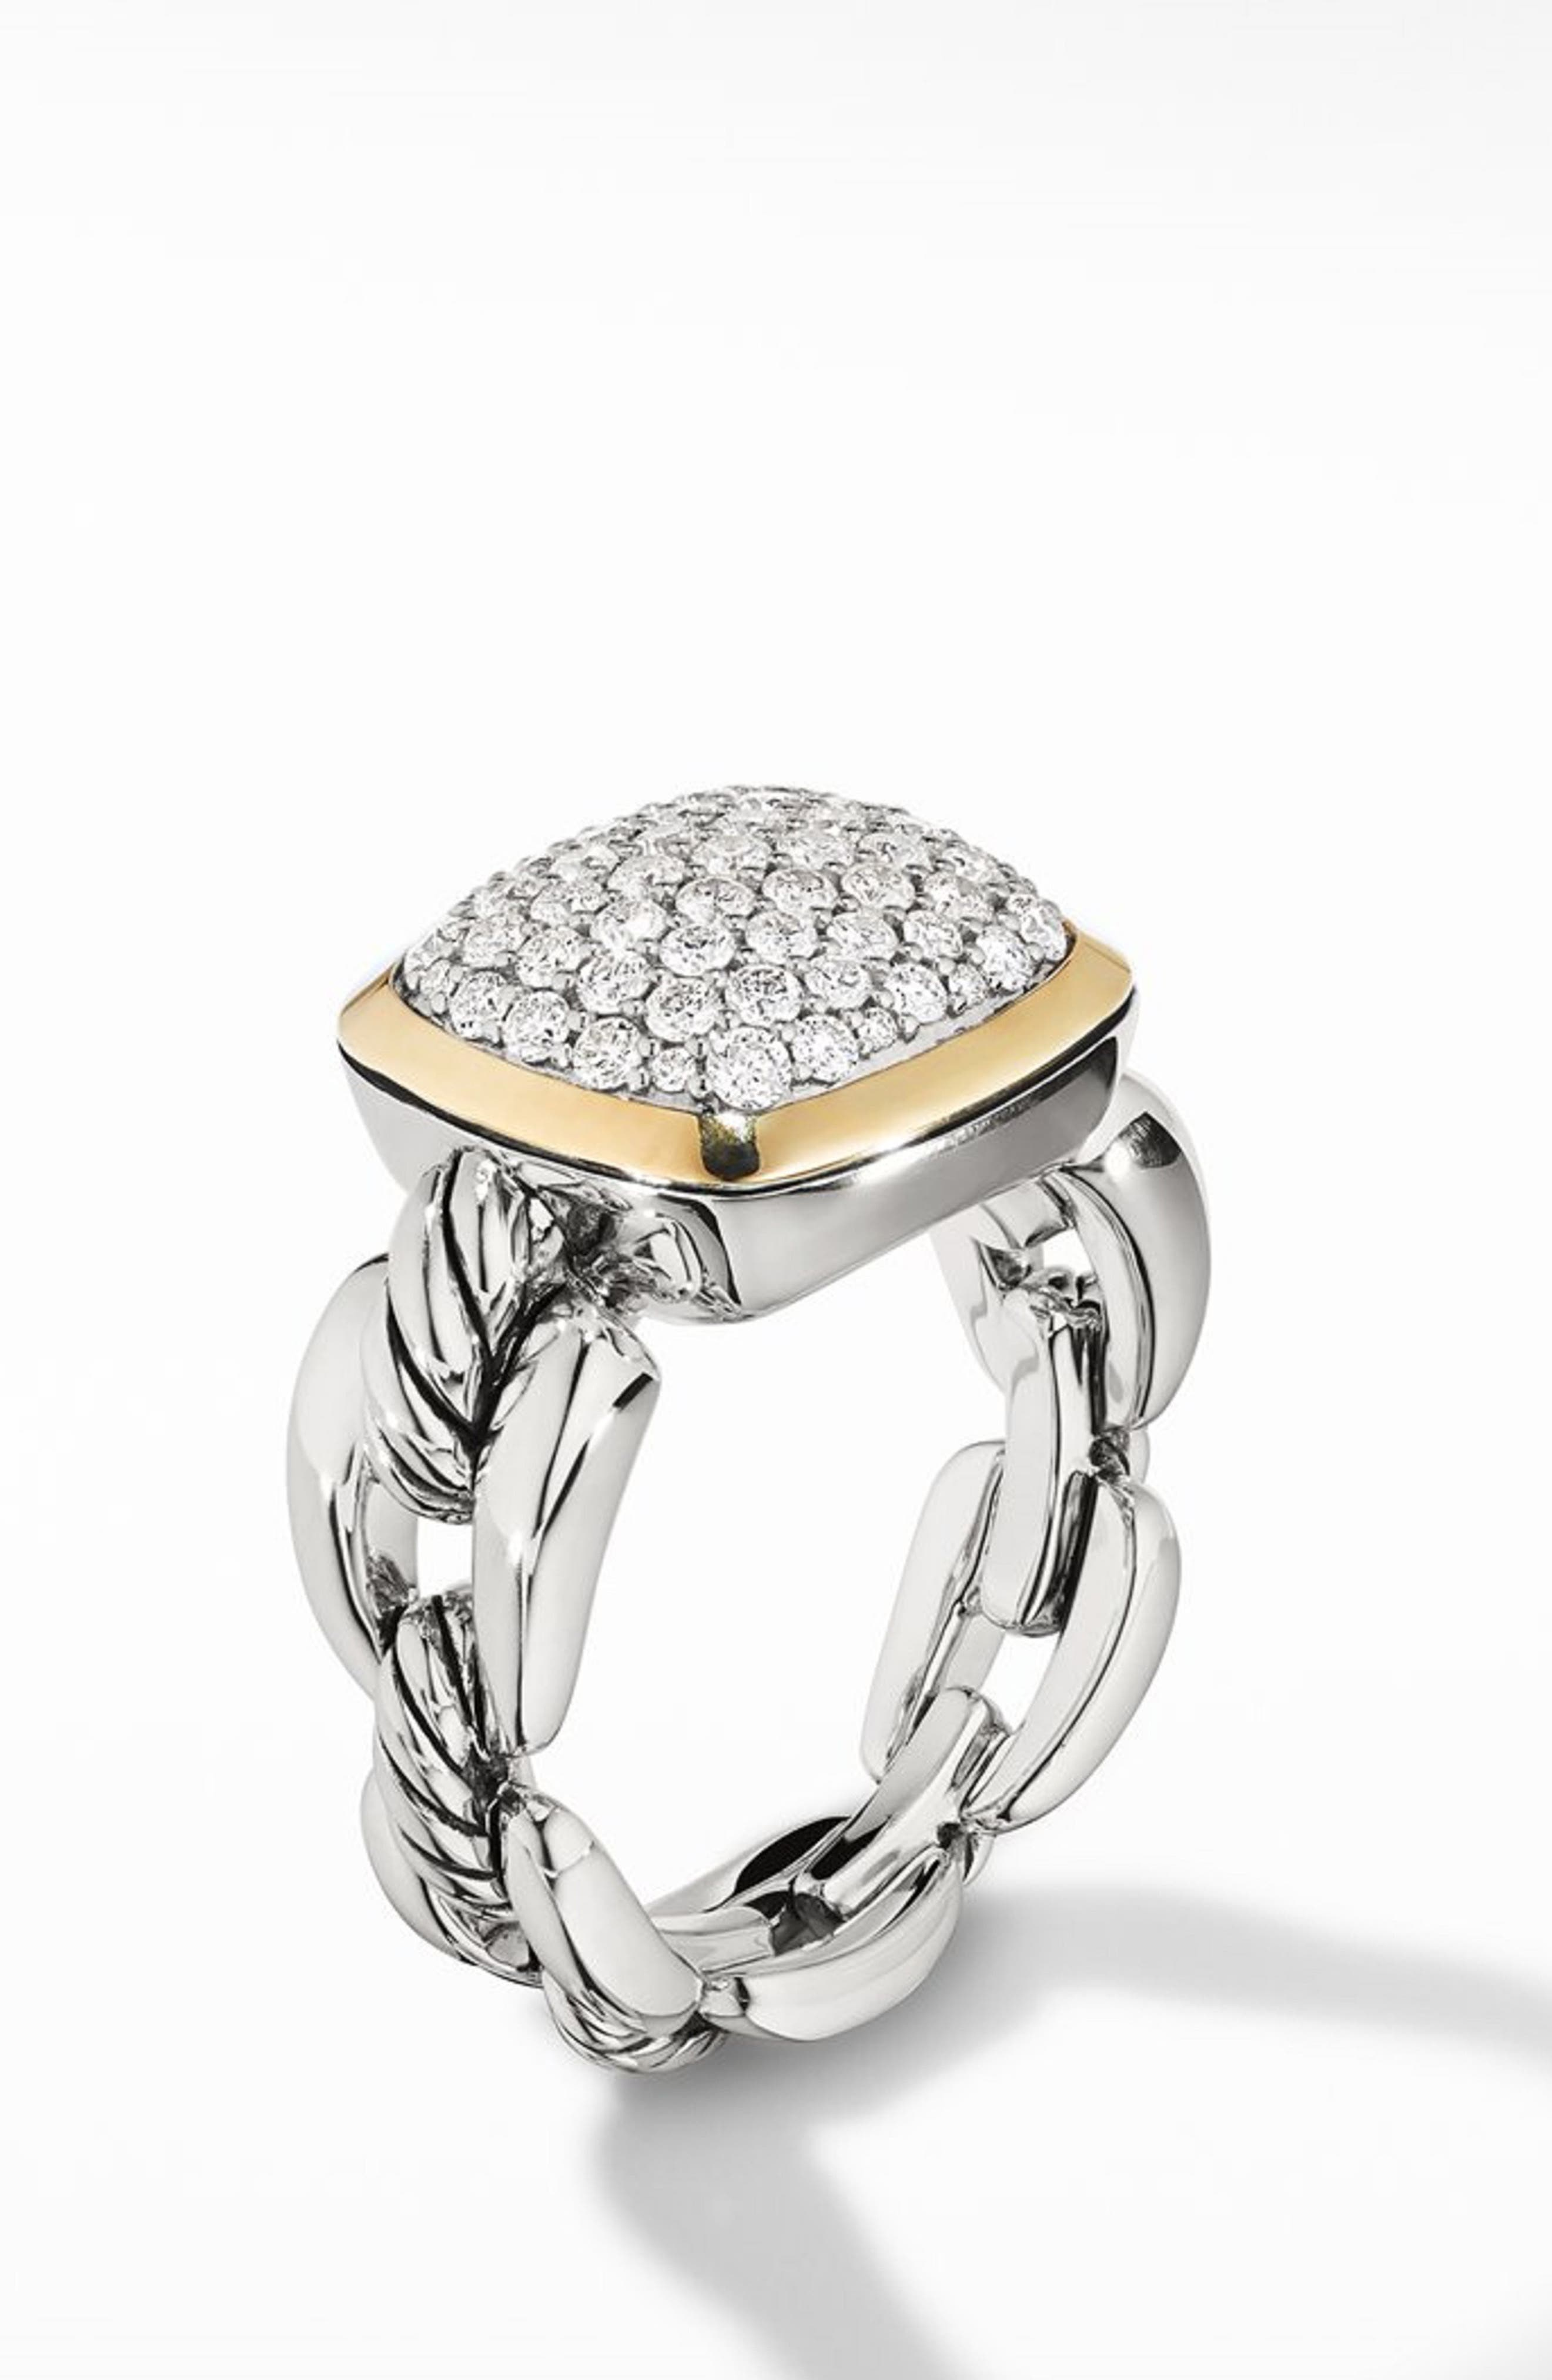 Wellesley Link Statement Ring with 18k Gold & Diamonds,                         Main,                         color, SILVER/ DIAMOND